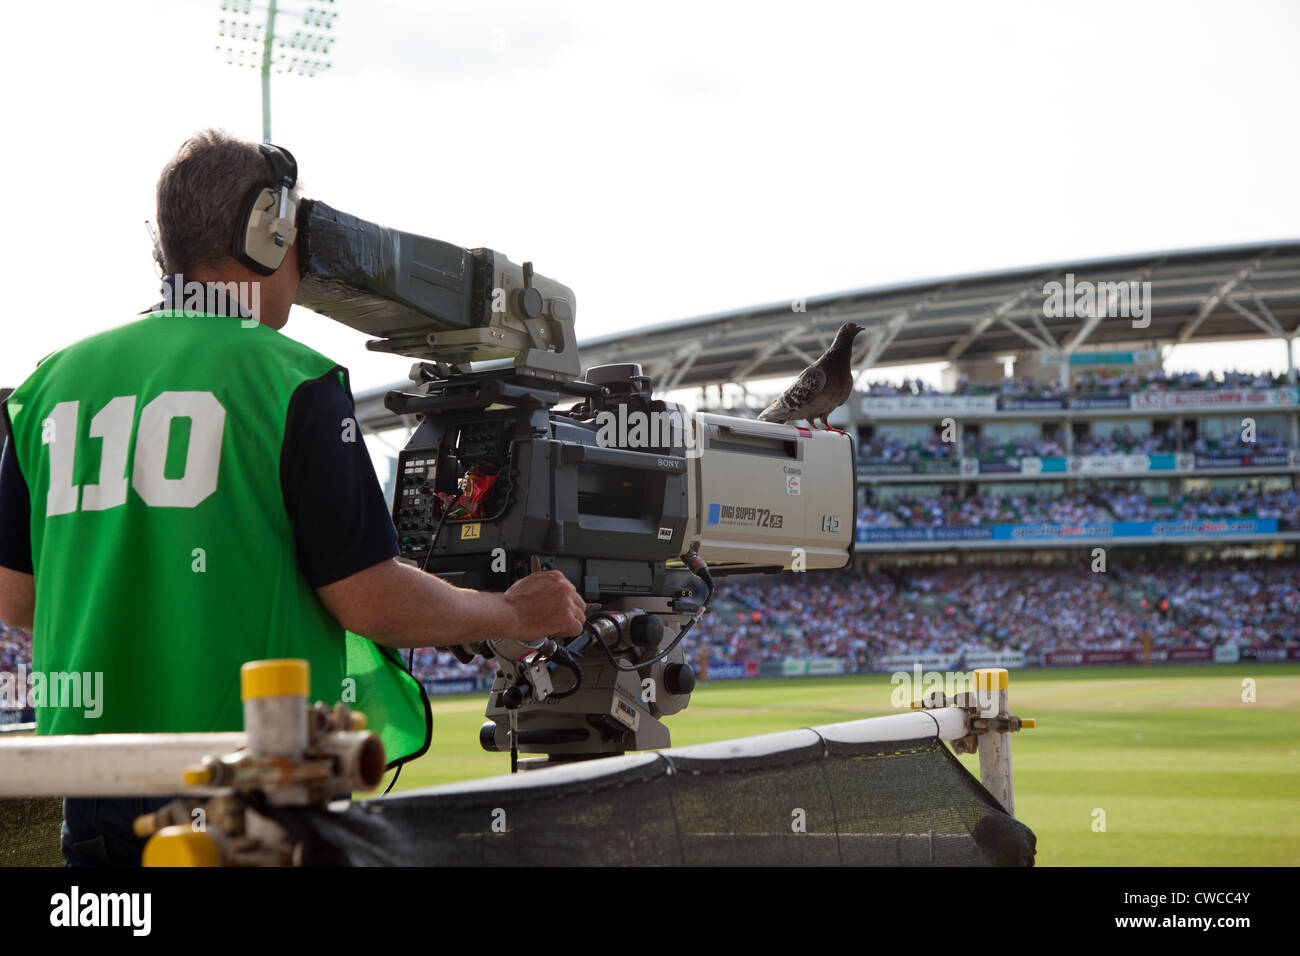 A cameraman films at the Oval England v Australia One Day International with a pigeon perching on the camera UK - Stock Image